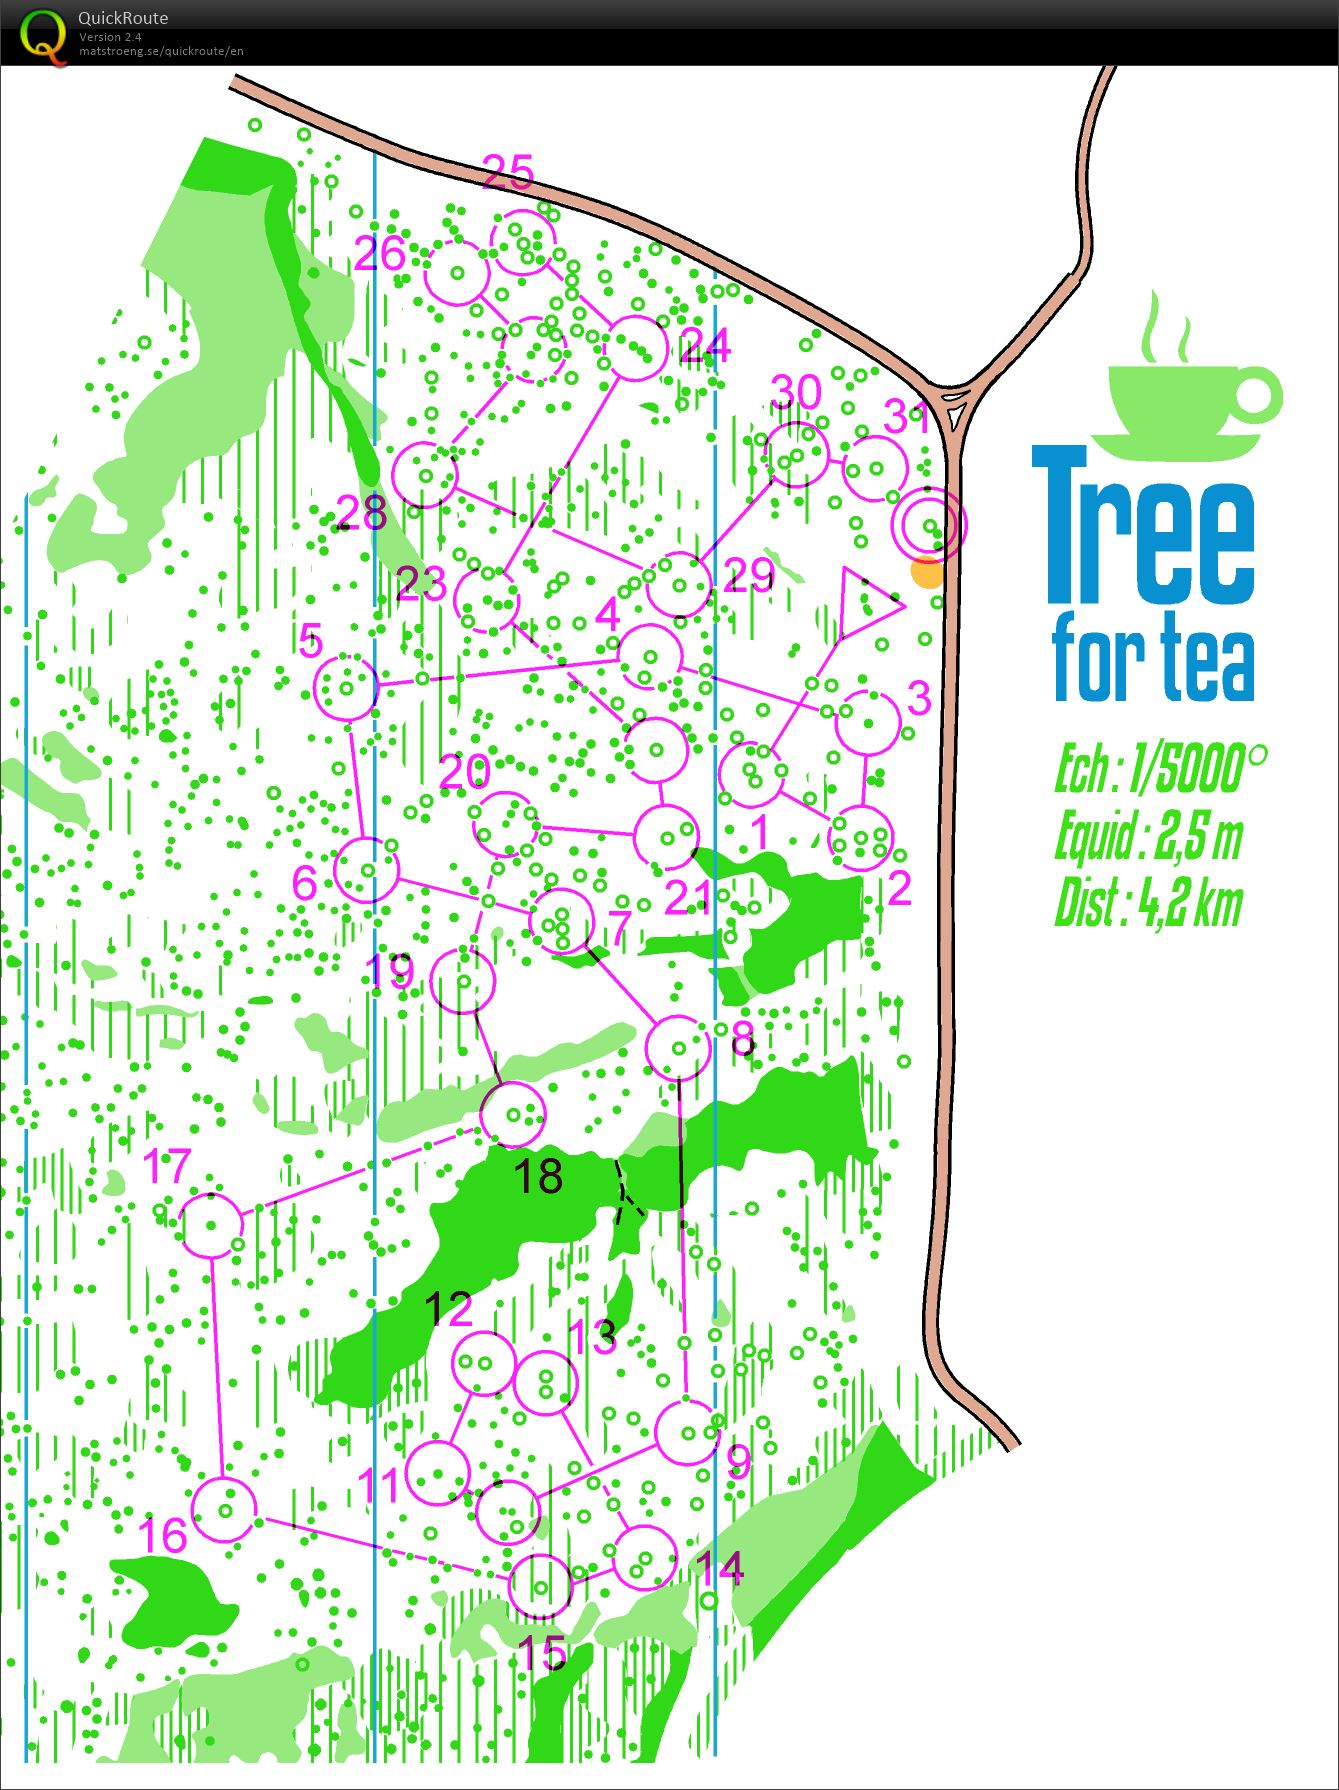 Tree For Tea (30/01/2016)